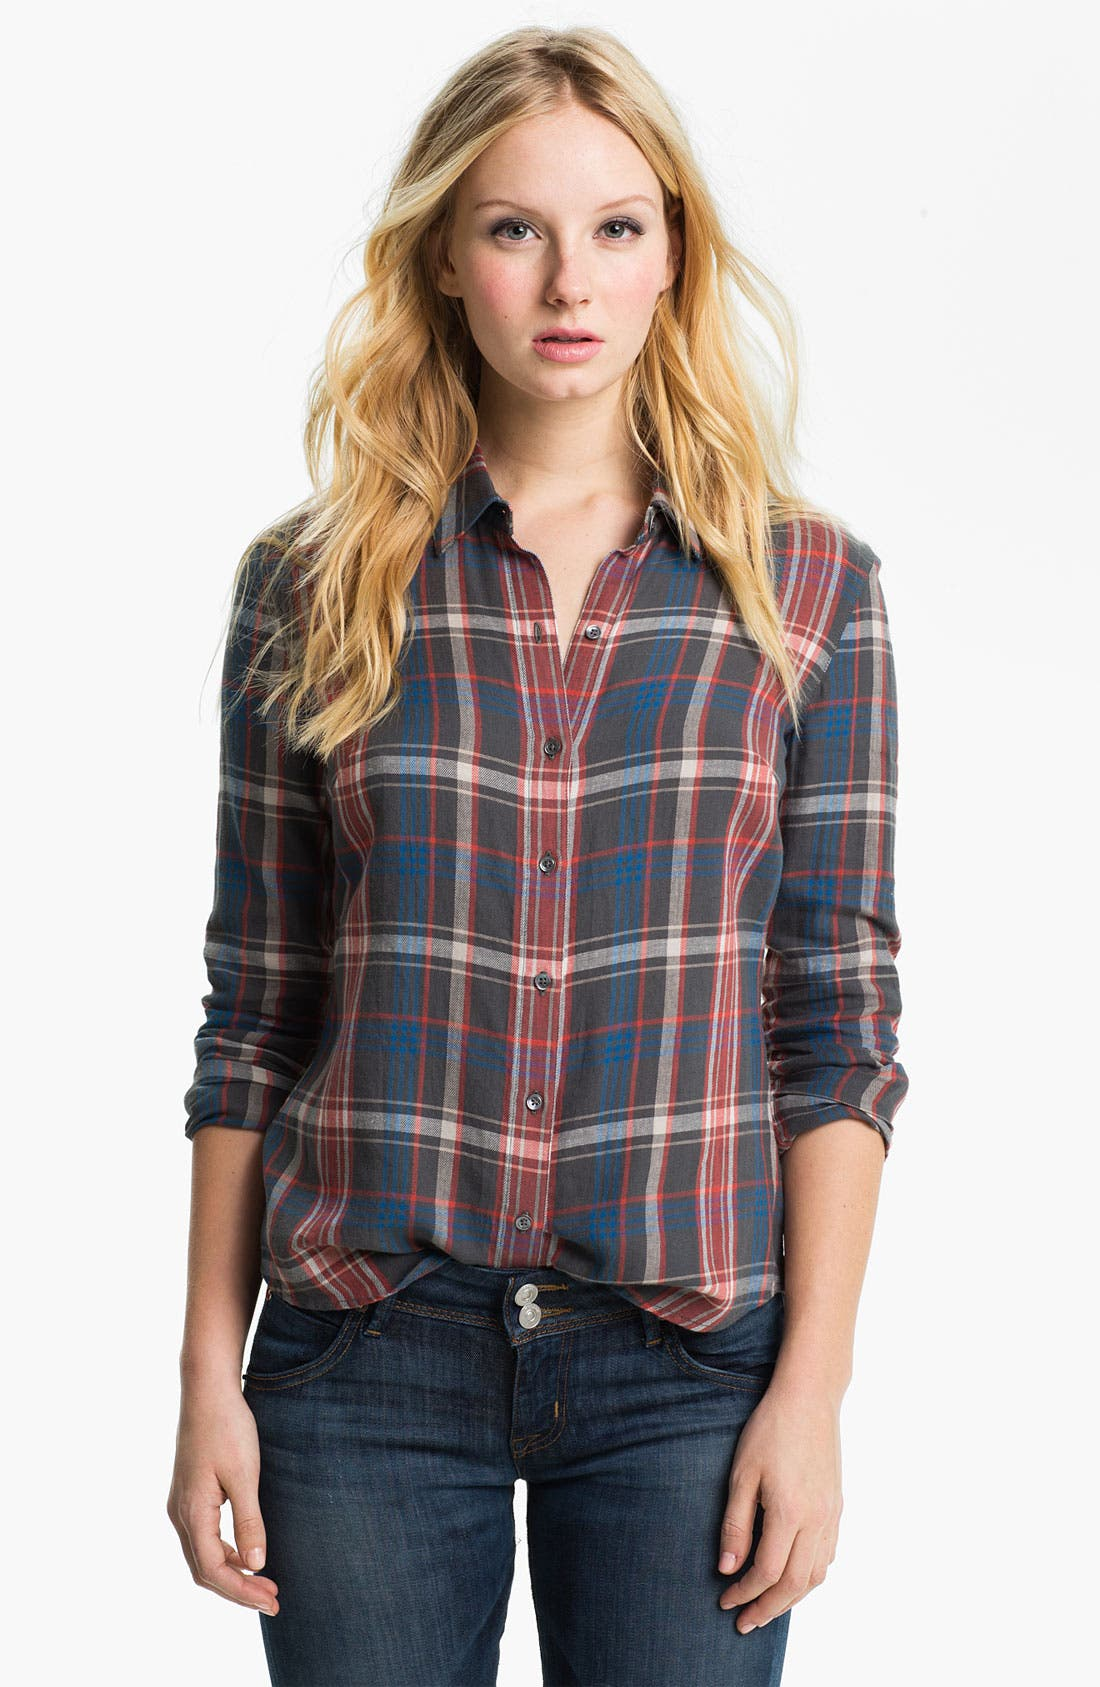 Alternate Image 1 Selected - James Perse 'Harbor' Plaid Shirt